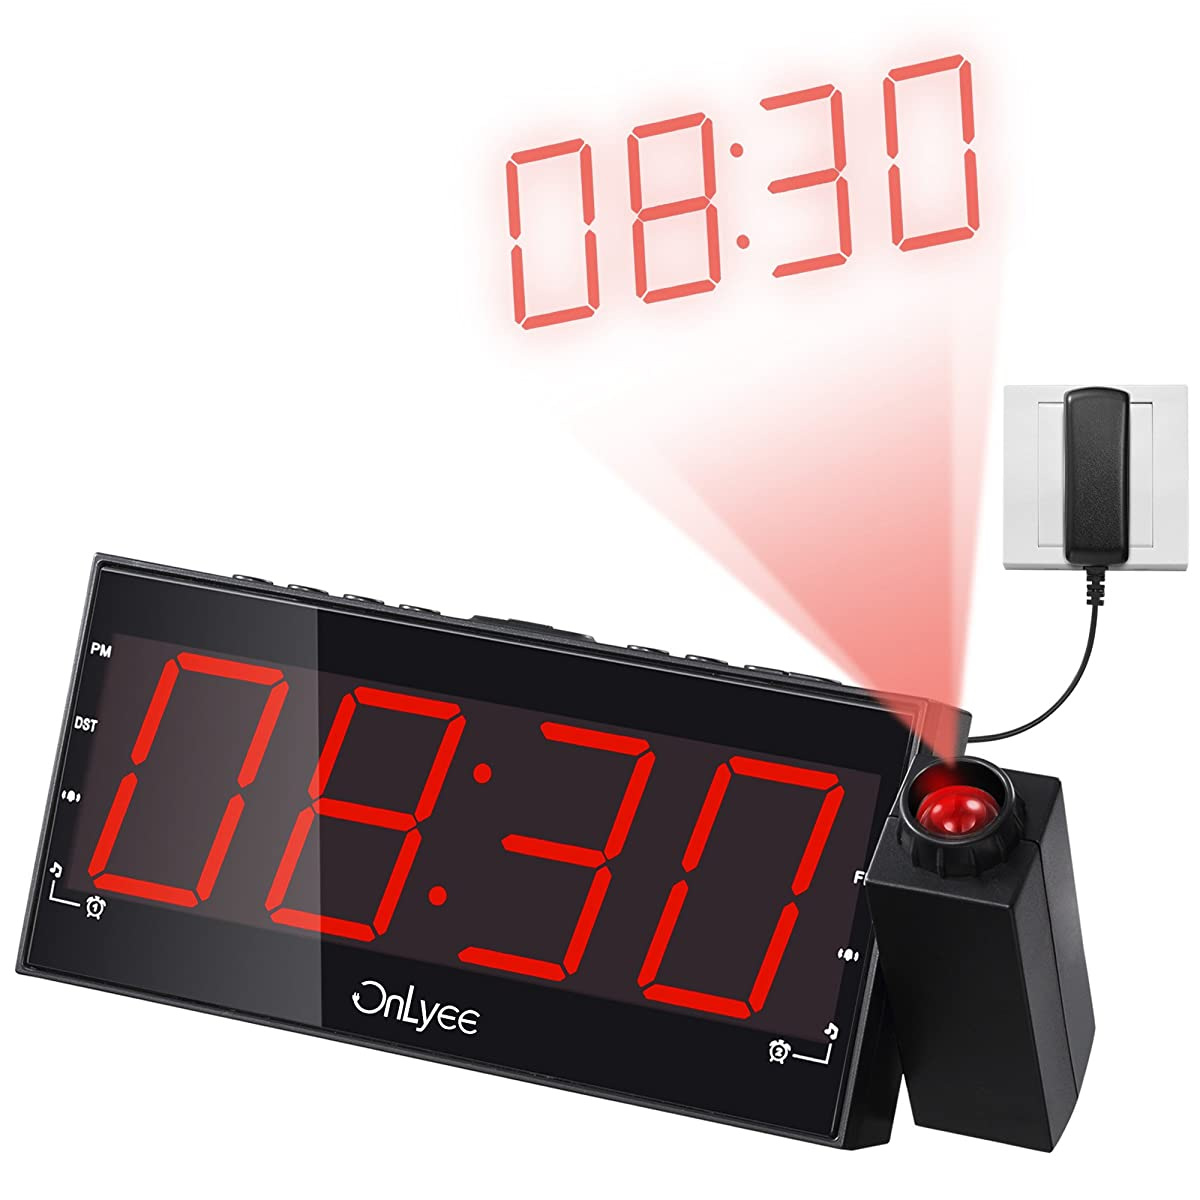 Onlyee Digital Led Dimmable Projection Alarm Clock Radio